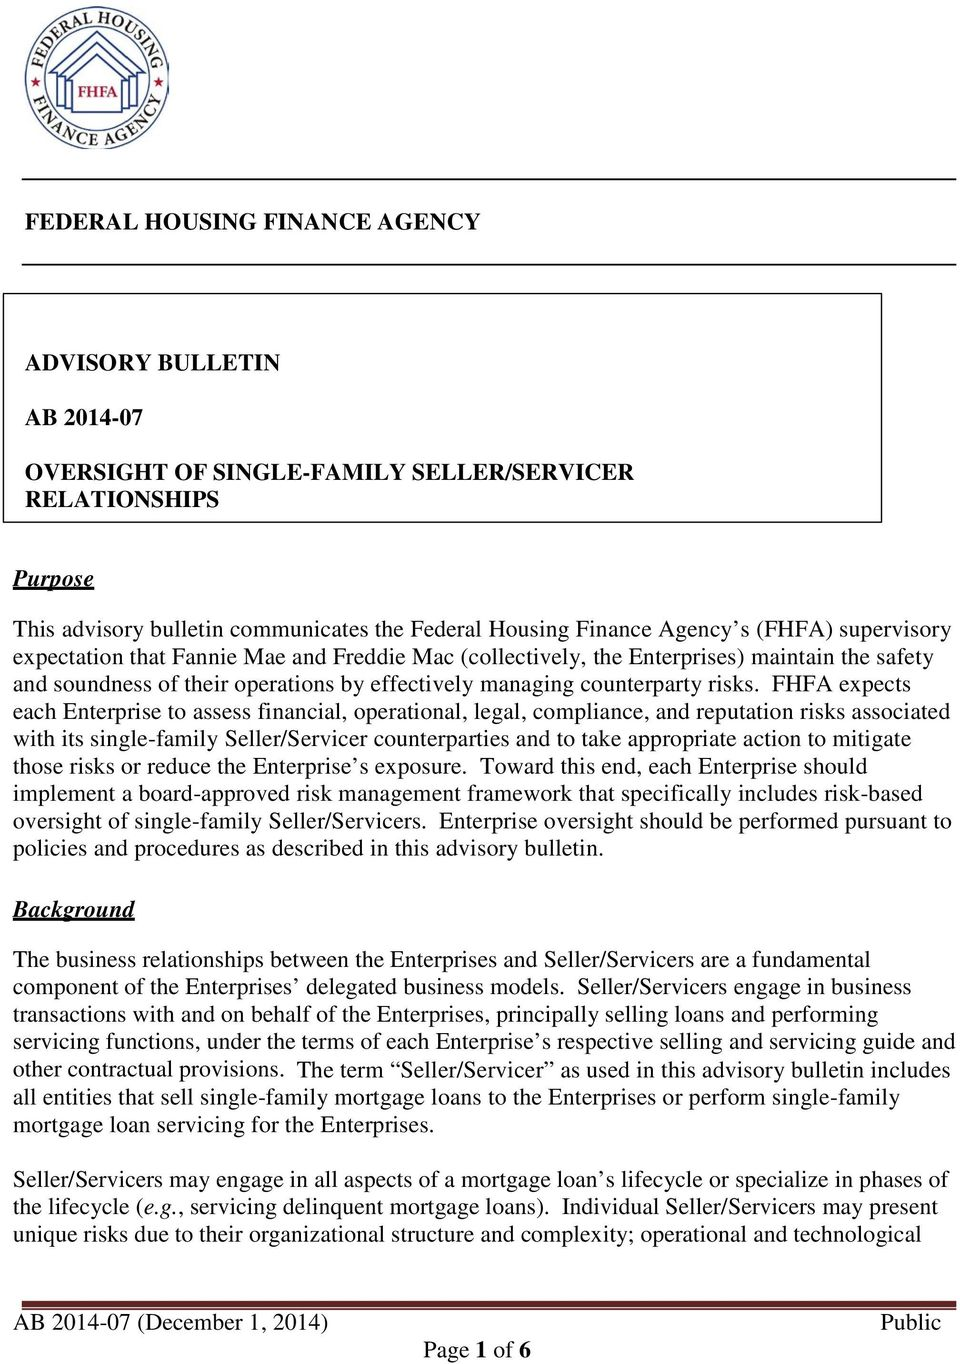 FHFA expects each Enterprise to assess financial, operational, legal, compliance, and reputation risks associated with its single-family Seller/Servicer counterparties and to take appropriate action